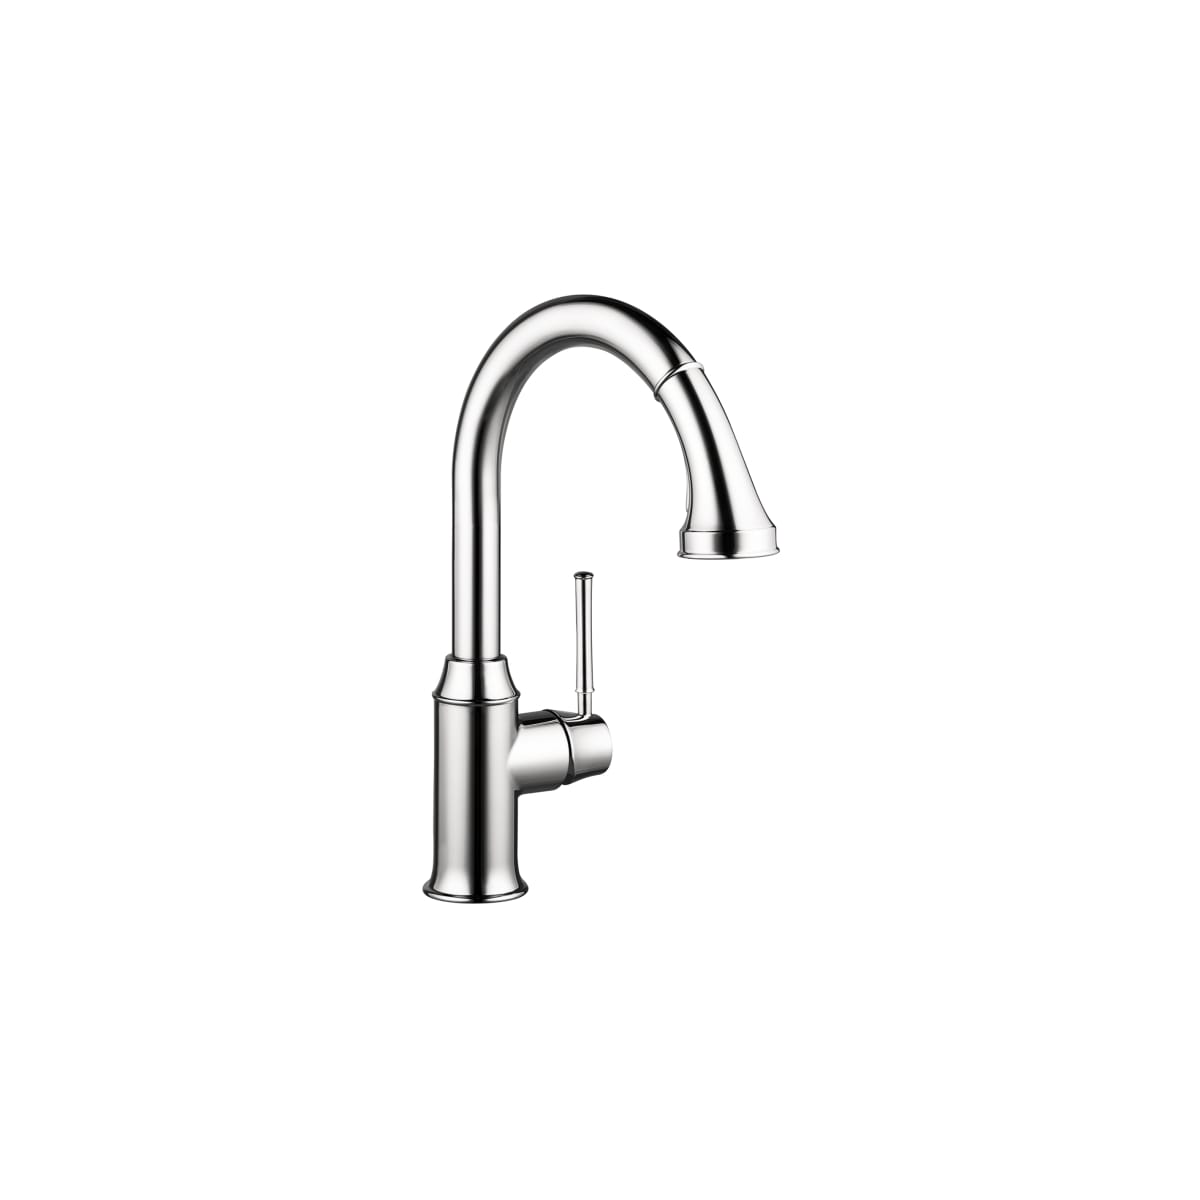 Hansgrohe 04215000 Chrome Talis C High-Arc Pull-Down Kitchen Faucet ...